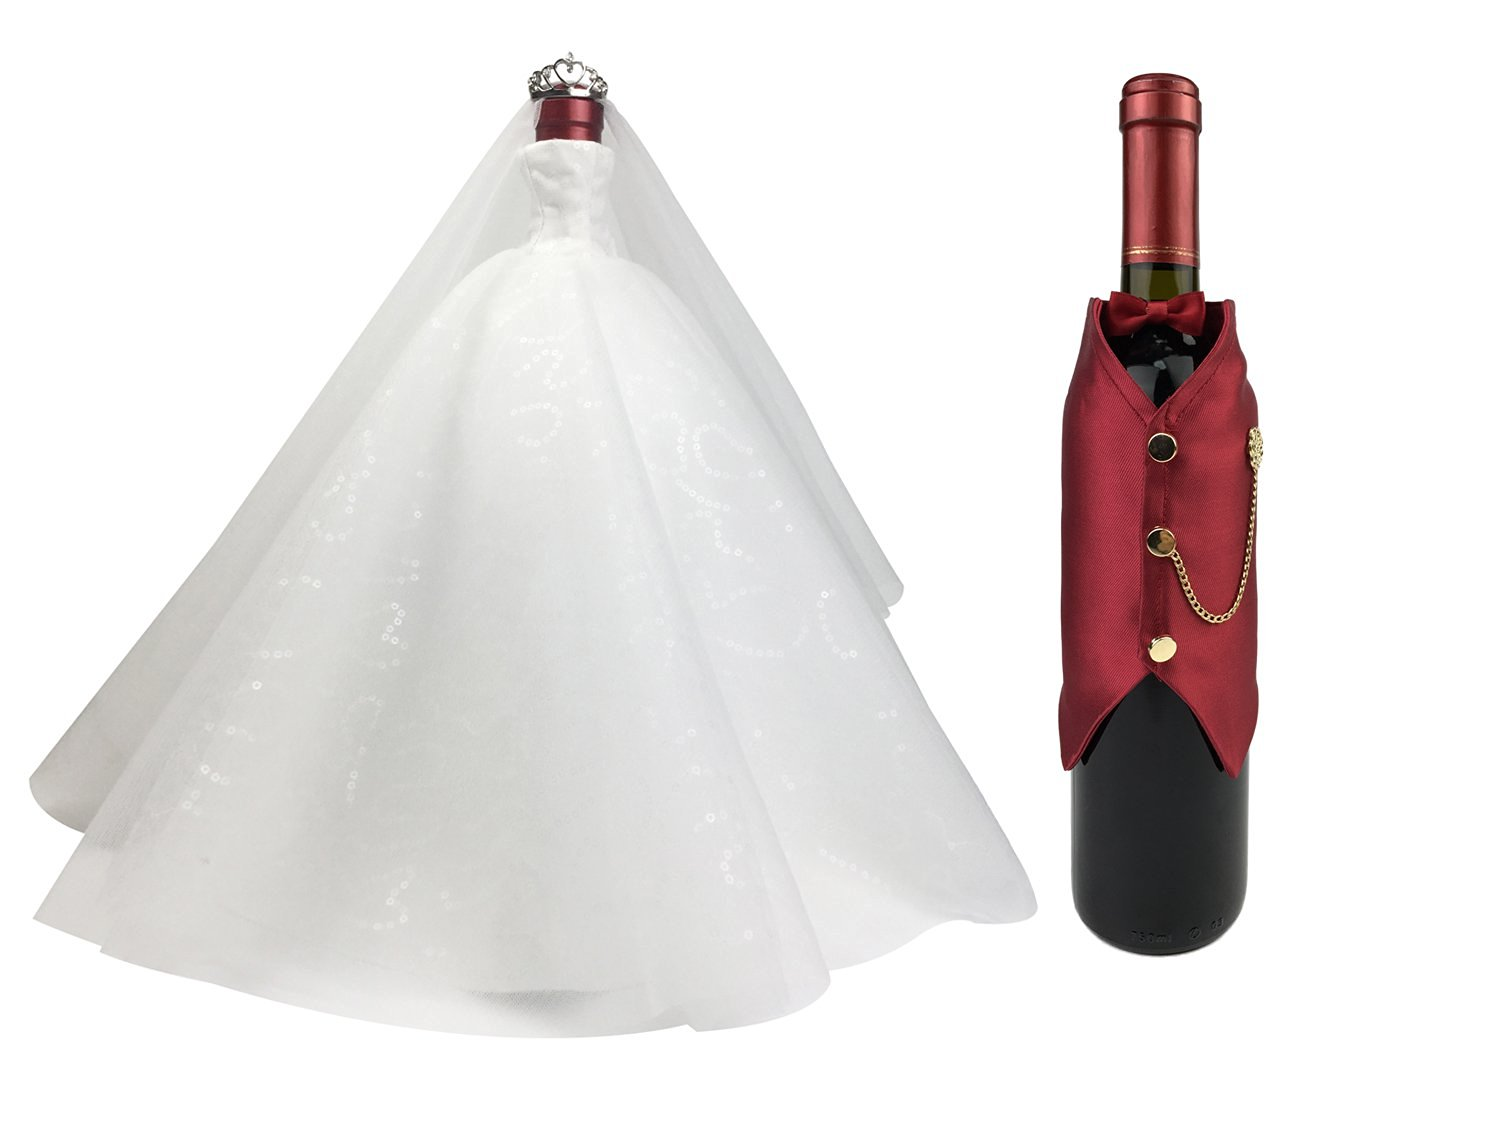 gifts for wine loversbride and groom wine bottle covers set decorations for wedding